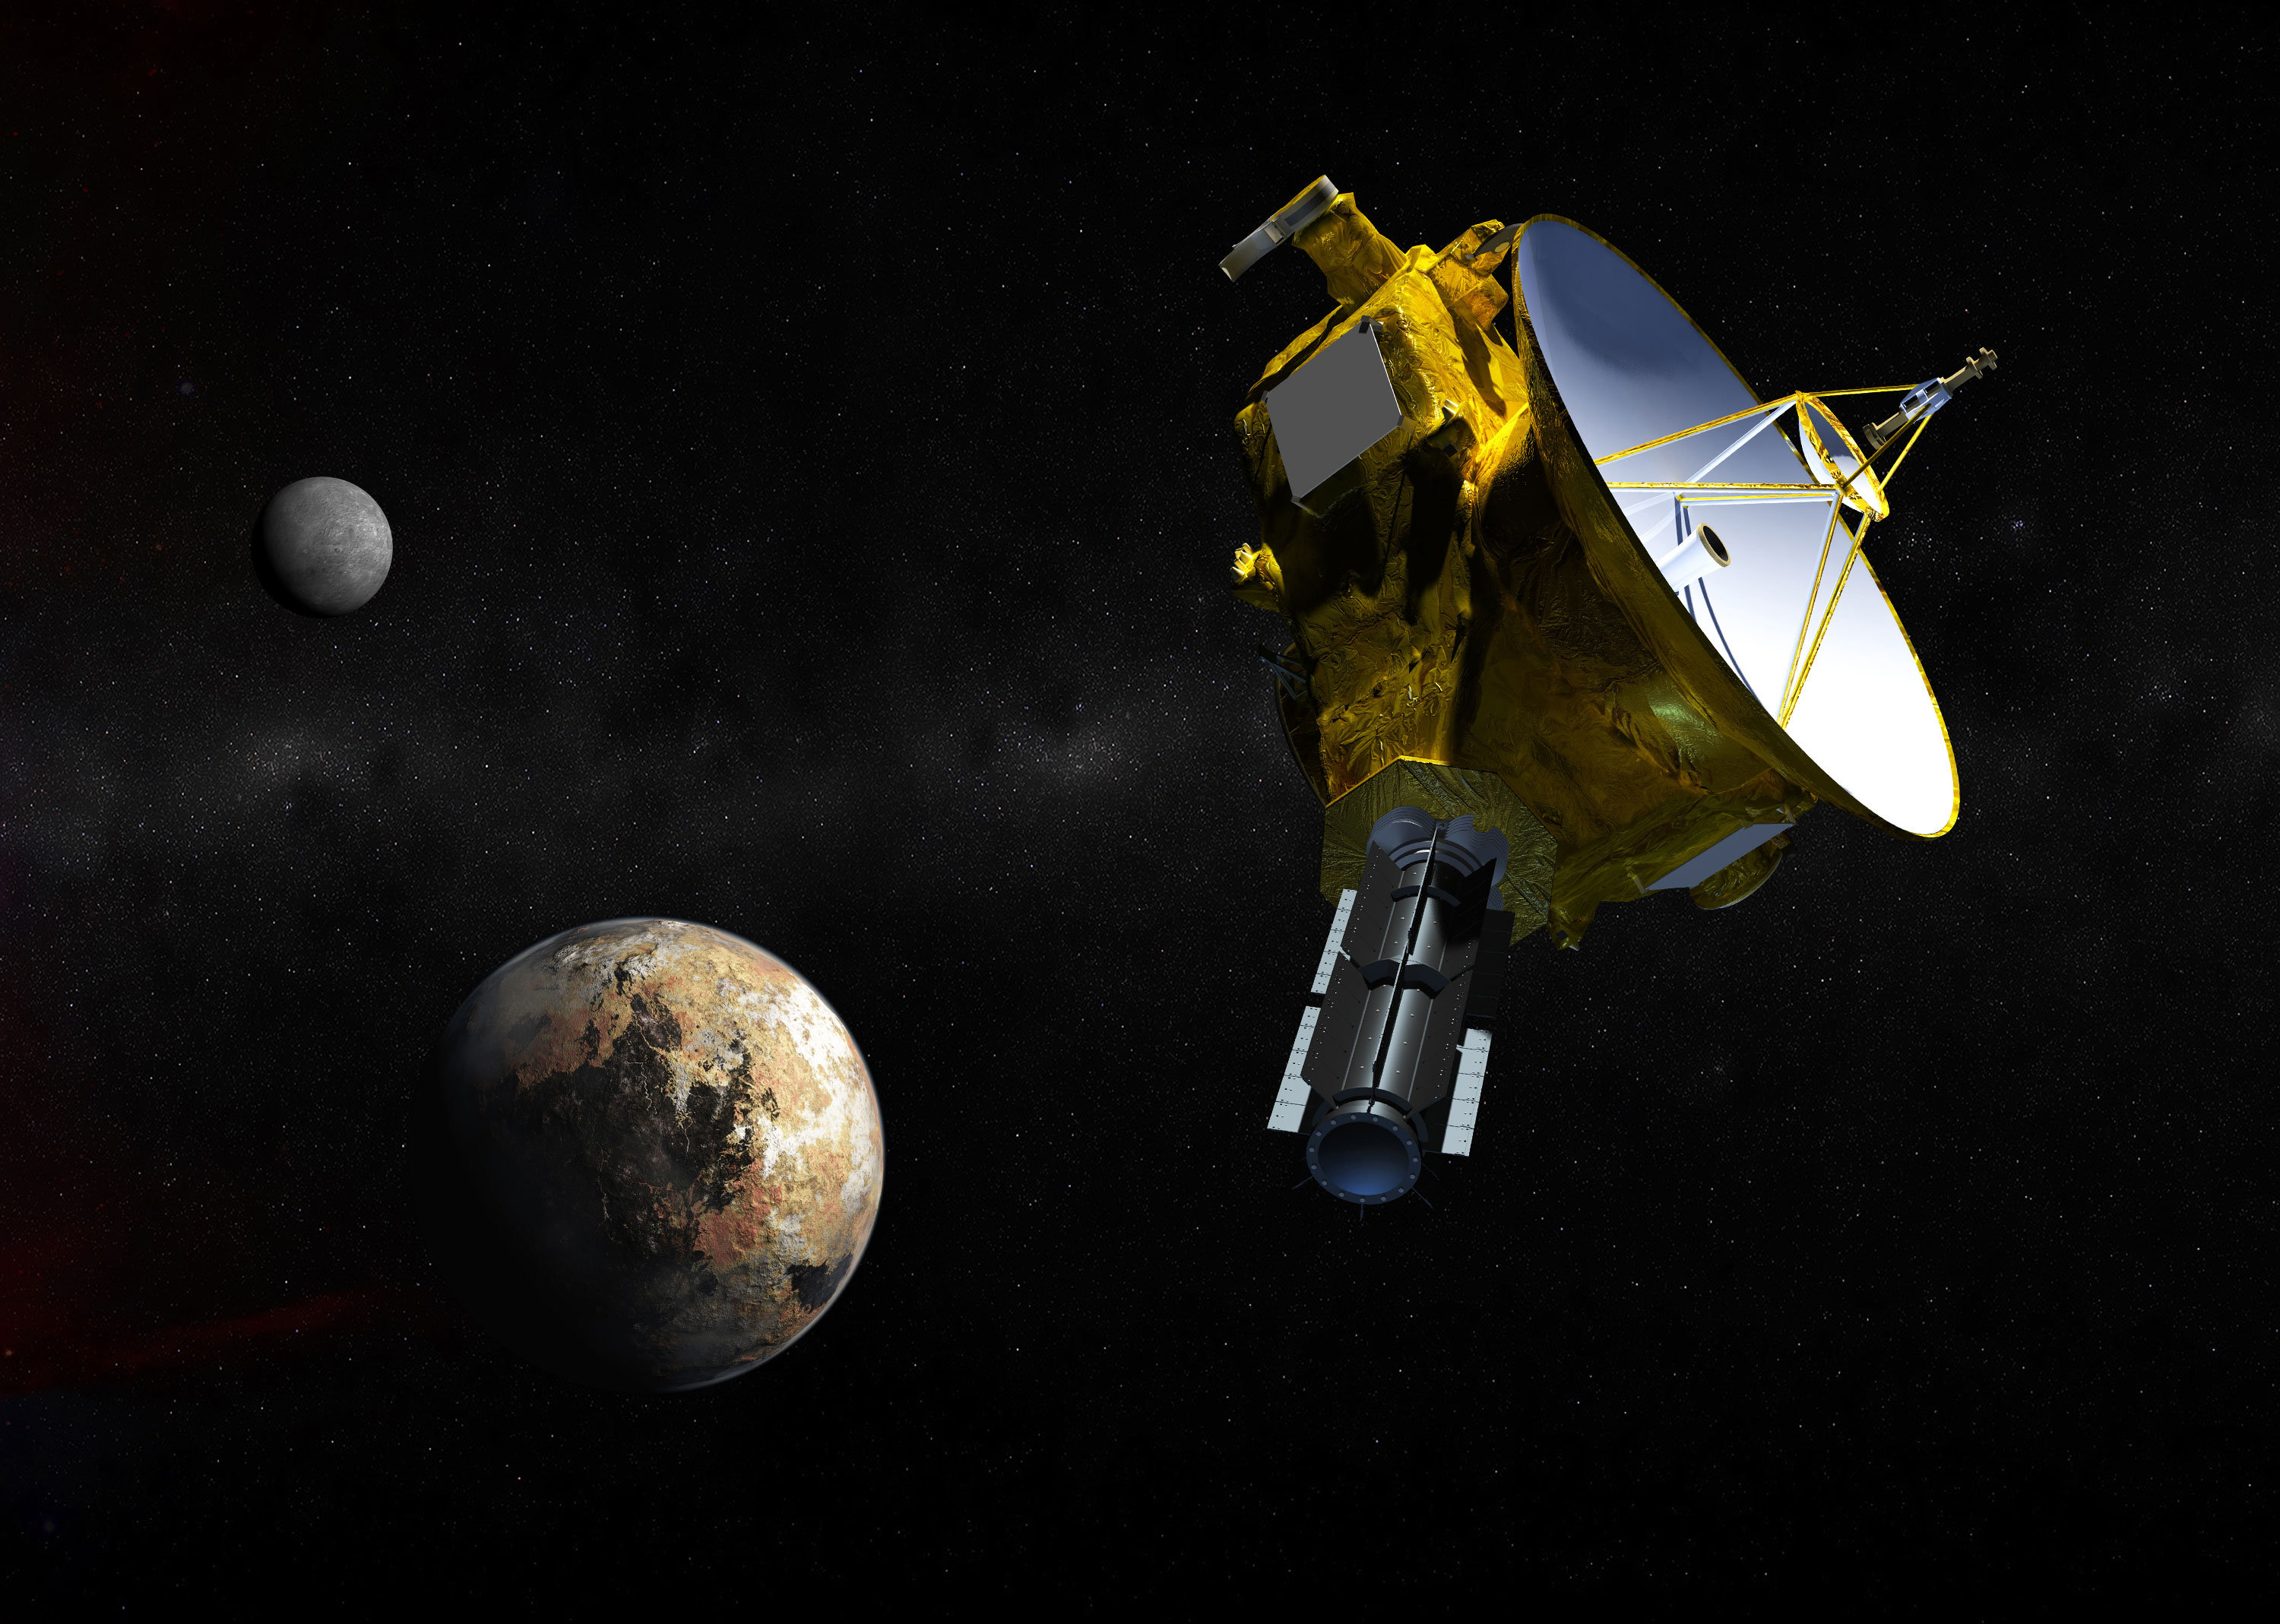 Artist's concept of the New Horizons spacecraft as it approaches Pluto. The craft will study the global geology and geomorphology of Pluto and large moon Charon, map their surface compositions and temperatures, and examine Pluto's atmosphere in detail. Credit: Johns Hopkins University Applied Physics Laboratory/Southwest Research Institute (JHUAPL/SwRI)